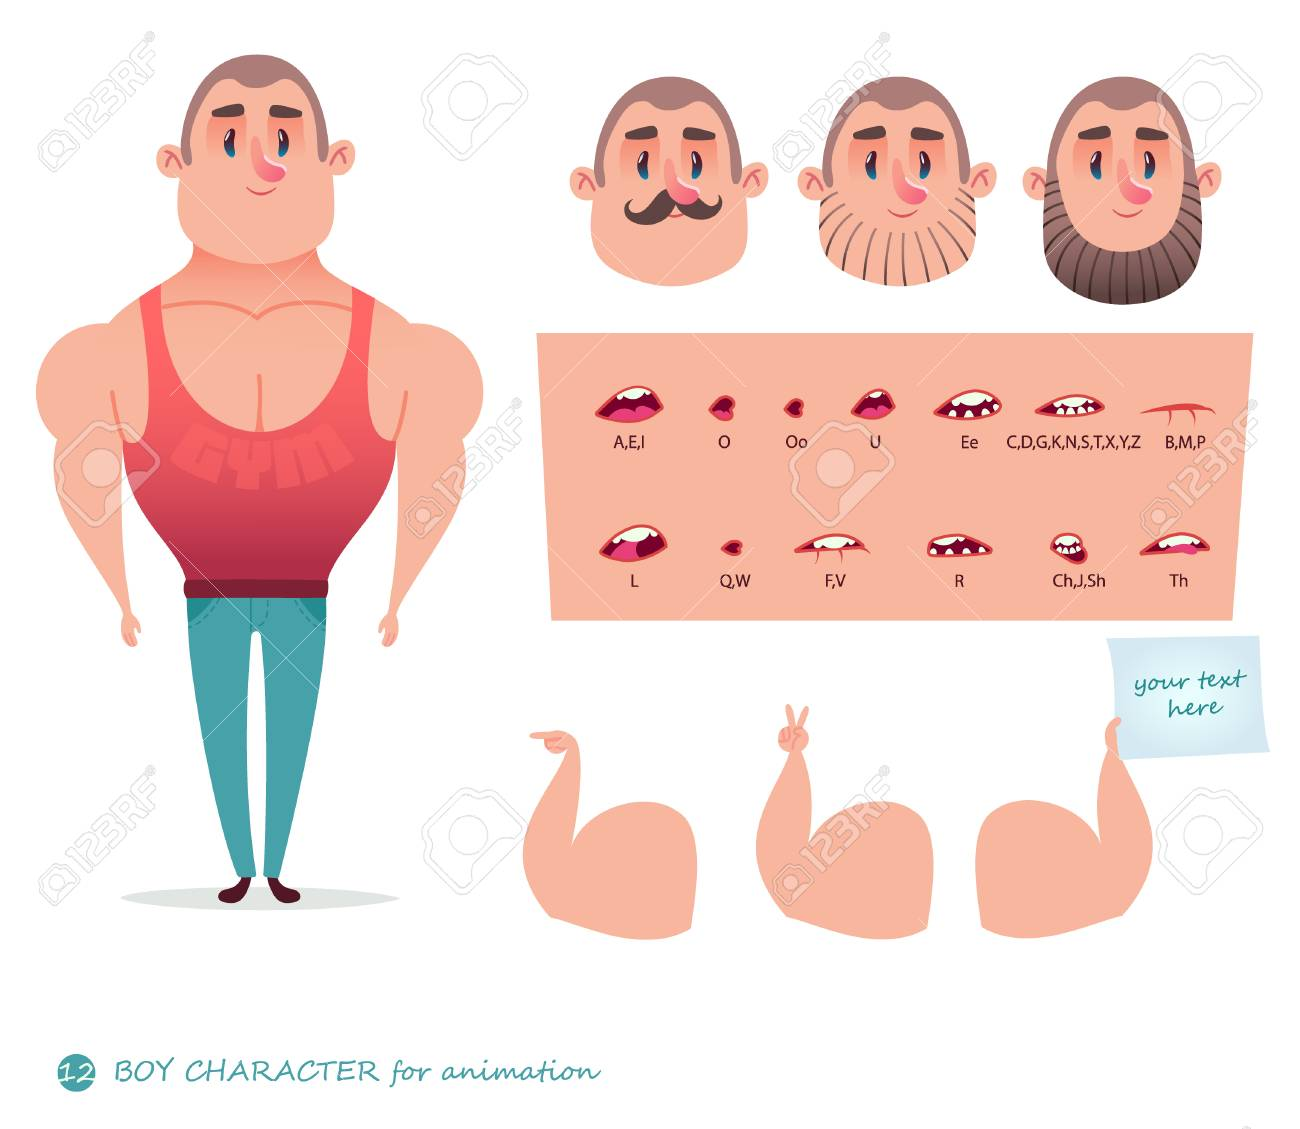 man character for your scenes parts of body template for design